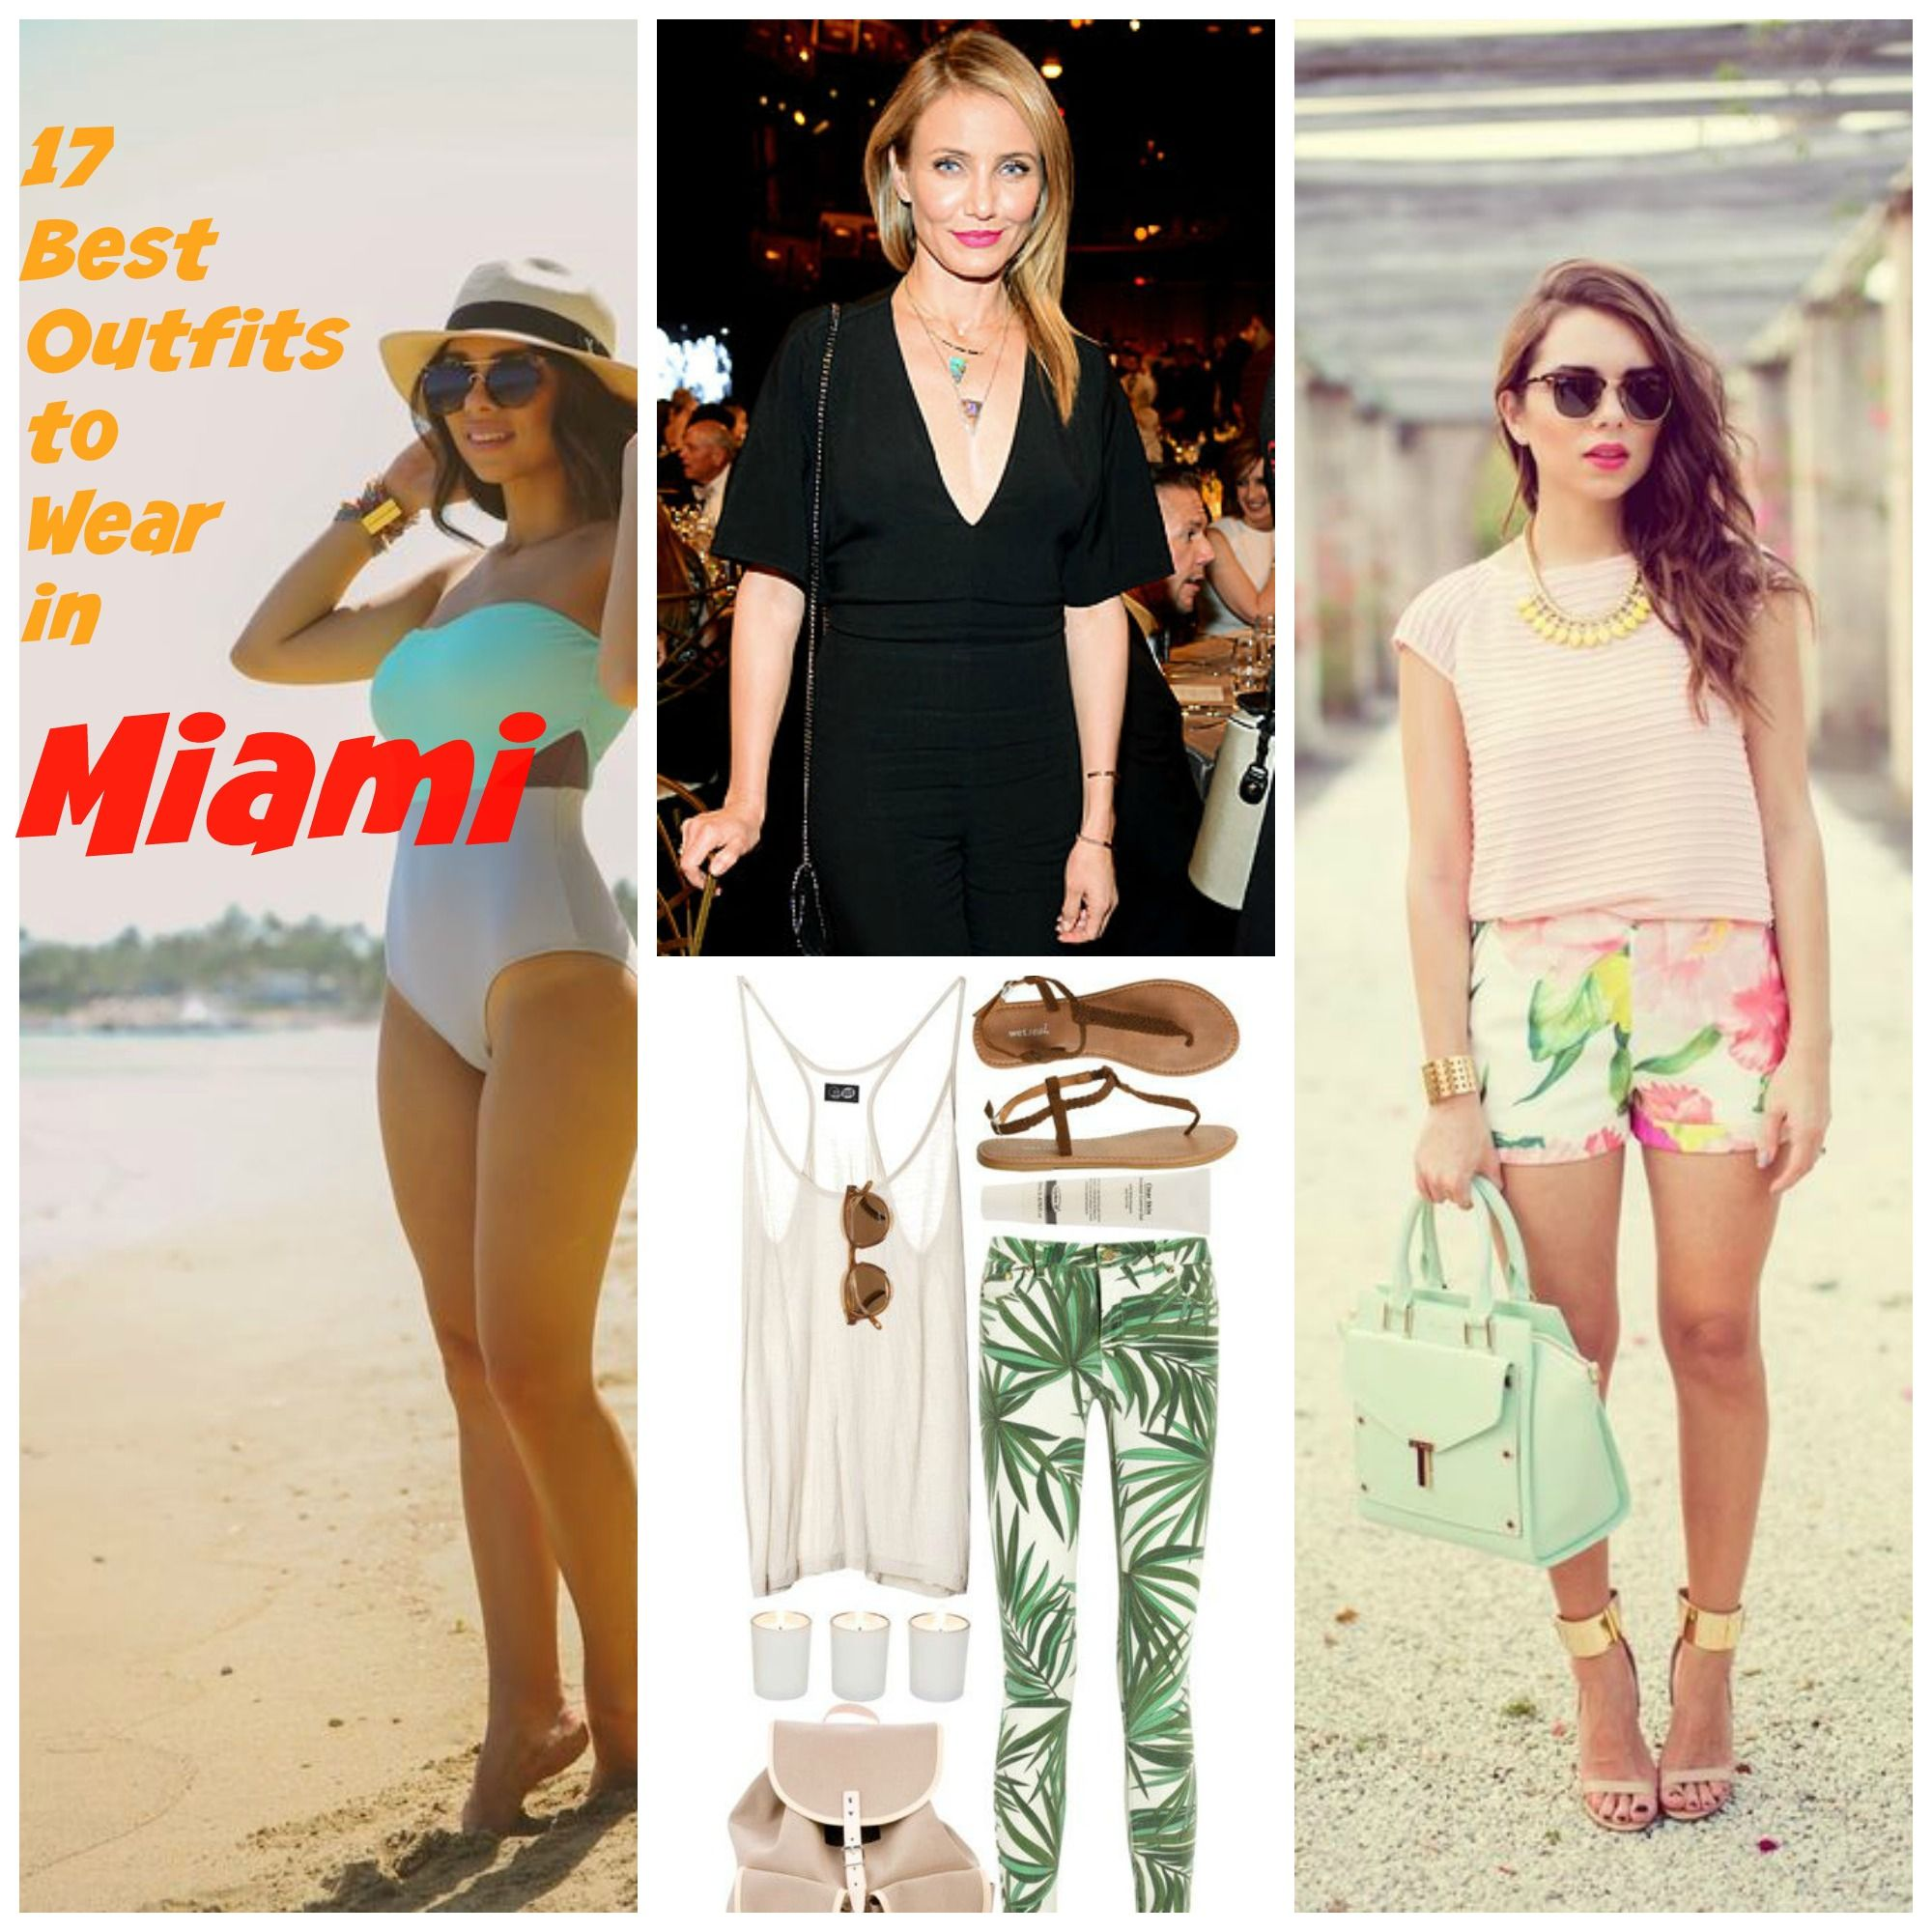 Outfit Ideas for Miami – 17 Ways to Dress up for Miami Trip